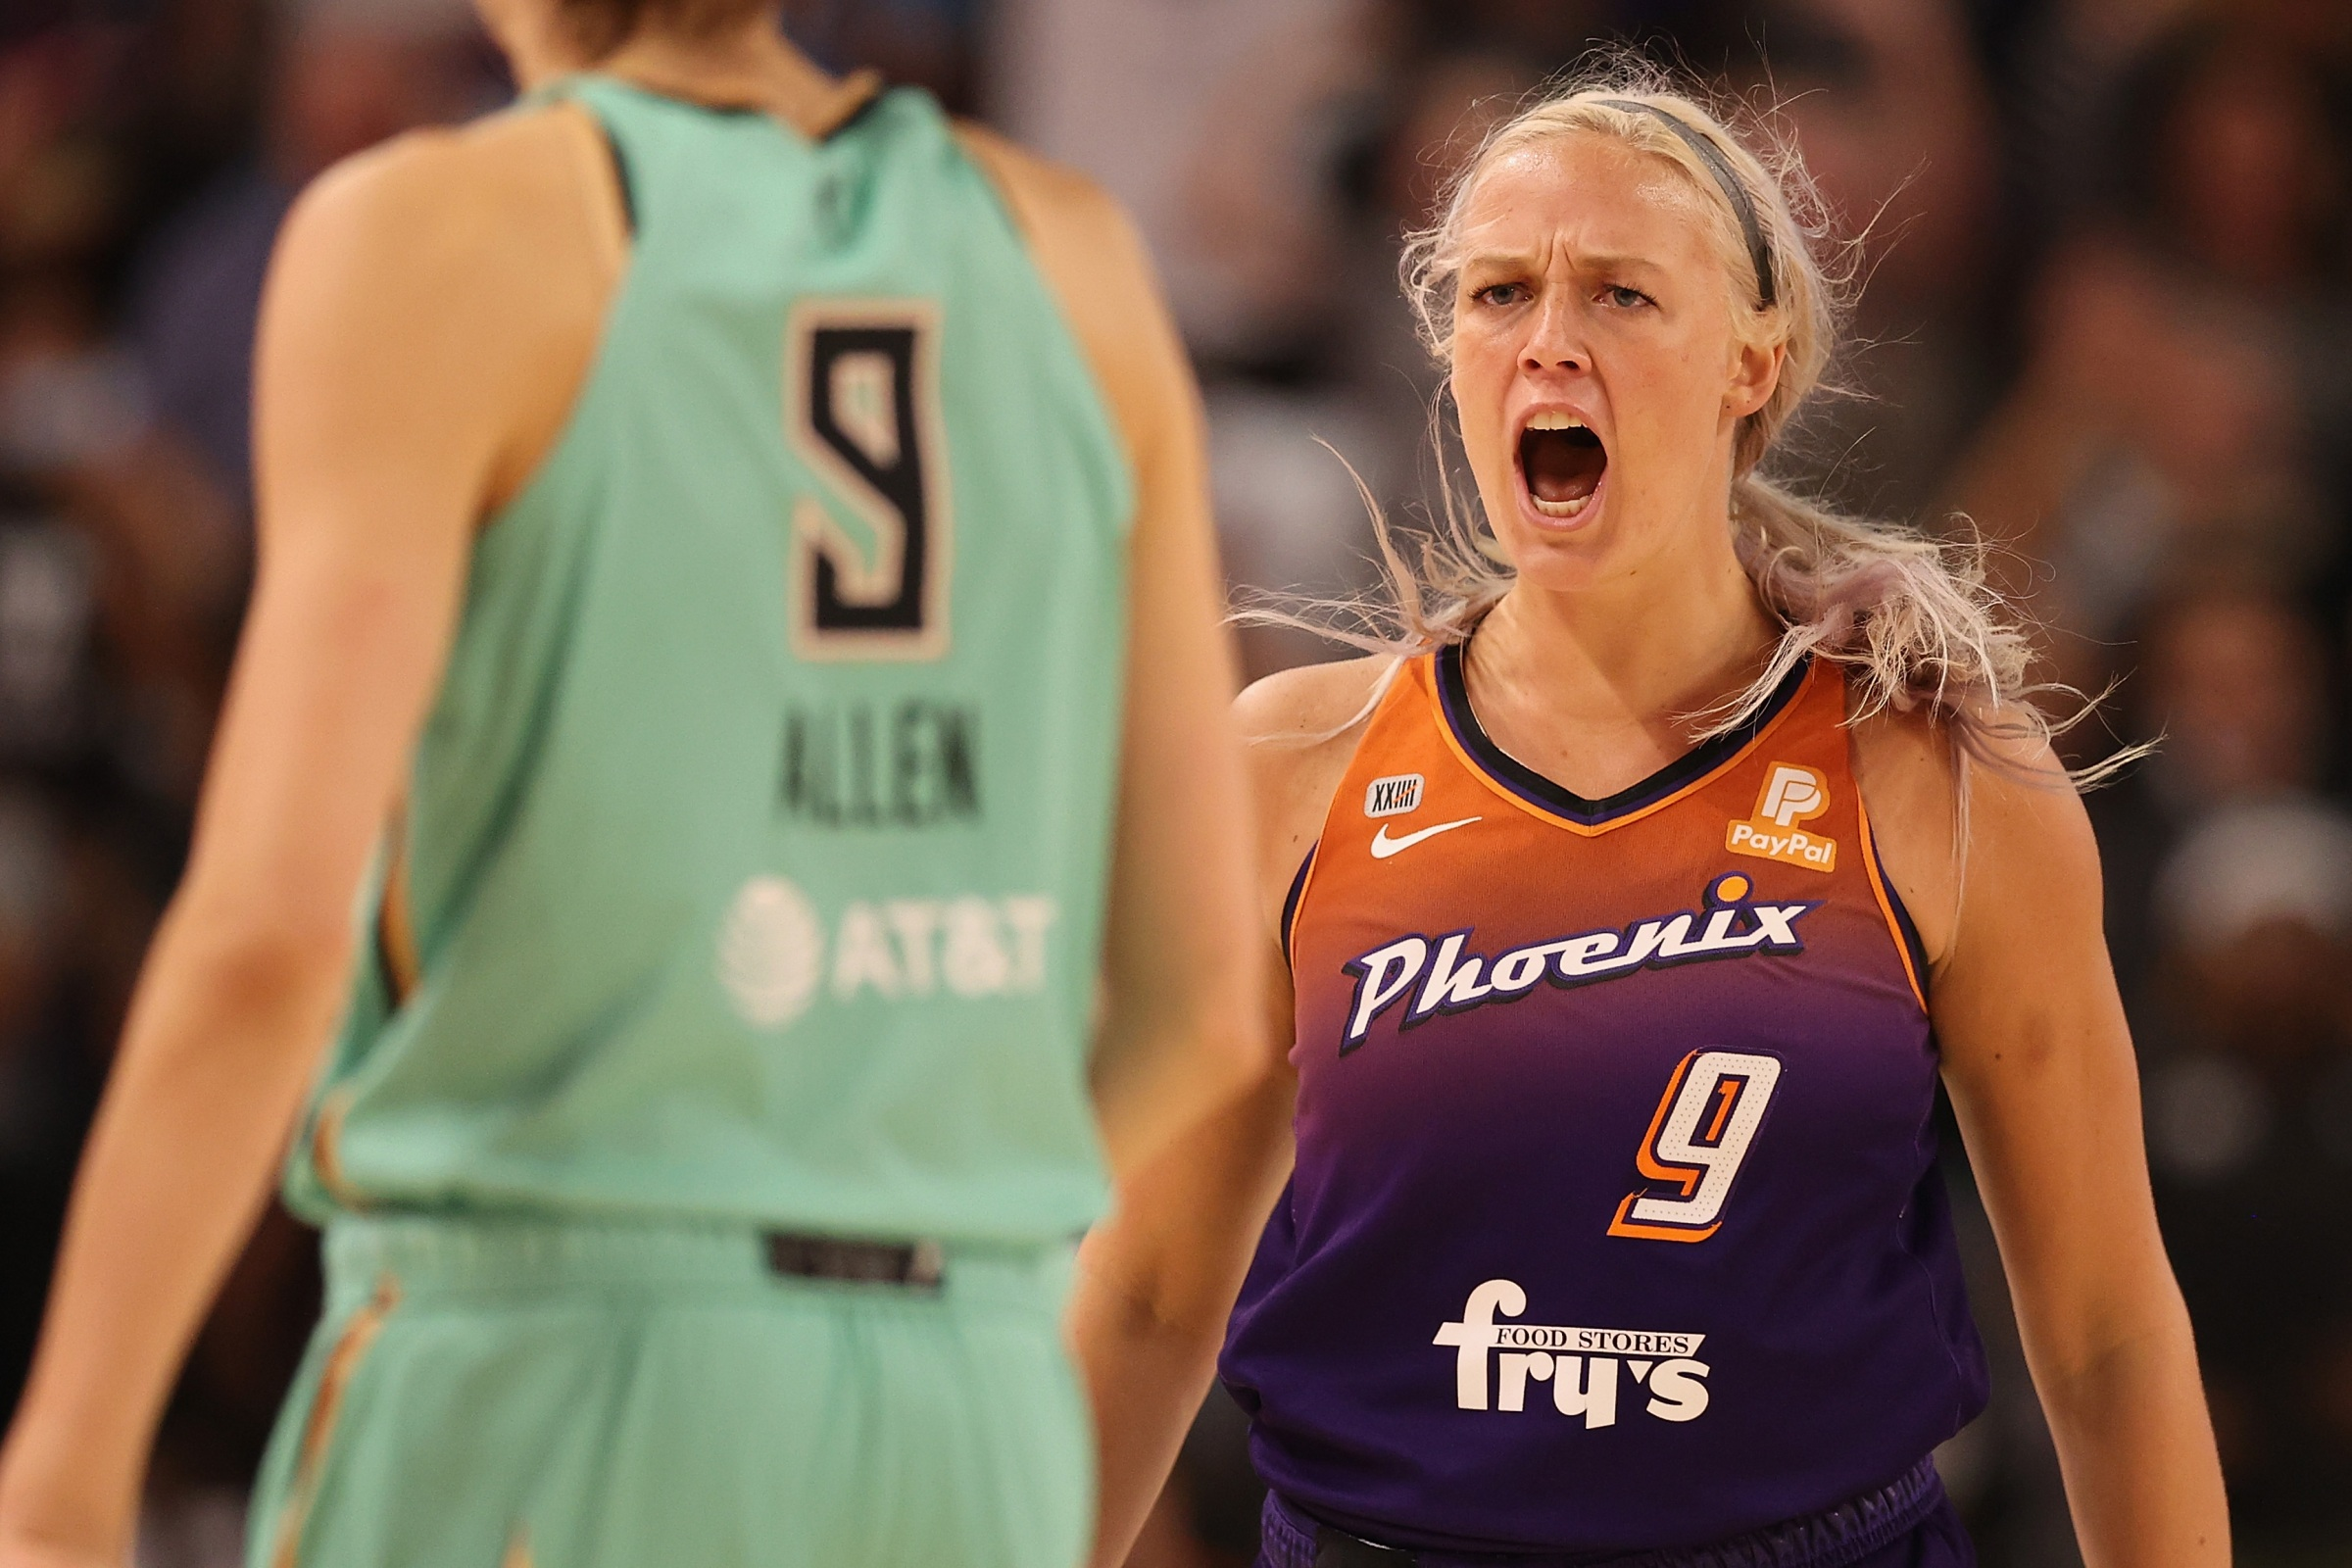 Sophie Cunningham #9 of the Phoenix Mercury reacts after hitting a three-point shot over Rebecca Allen #9 of the New York Liberty during the second half of the first round WNBA playoffs at Grand Canyon University Arena on September 23, 2021 in Phoenix, Arizona. The Mercury defeated the Liberty 83-82.